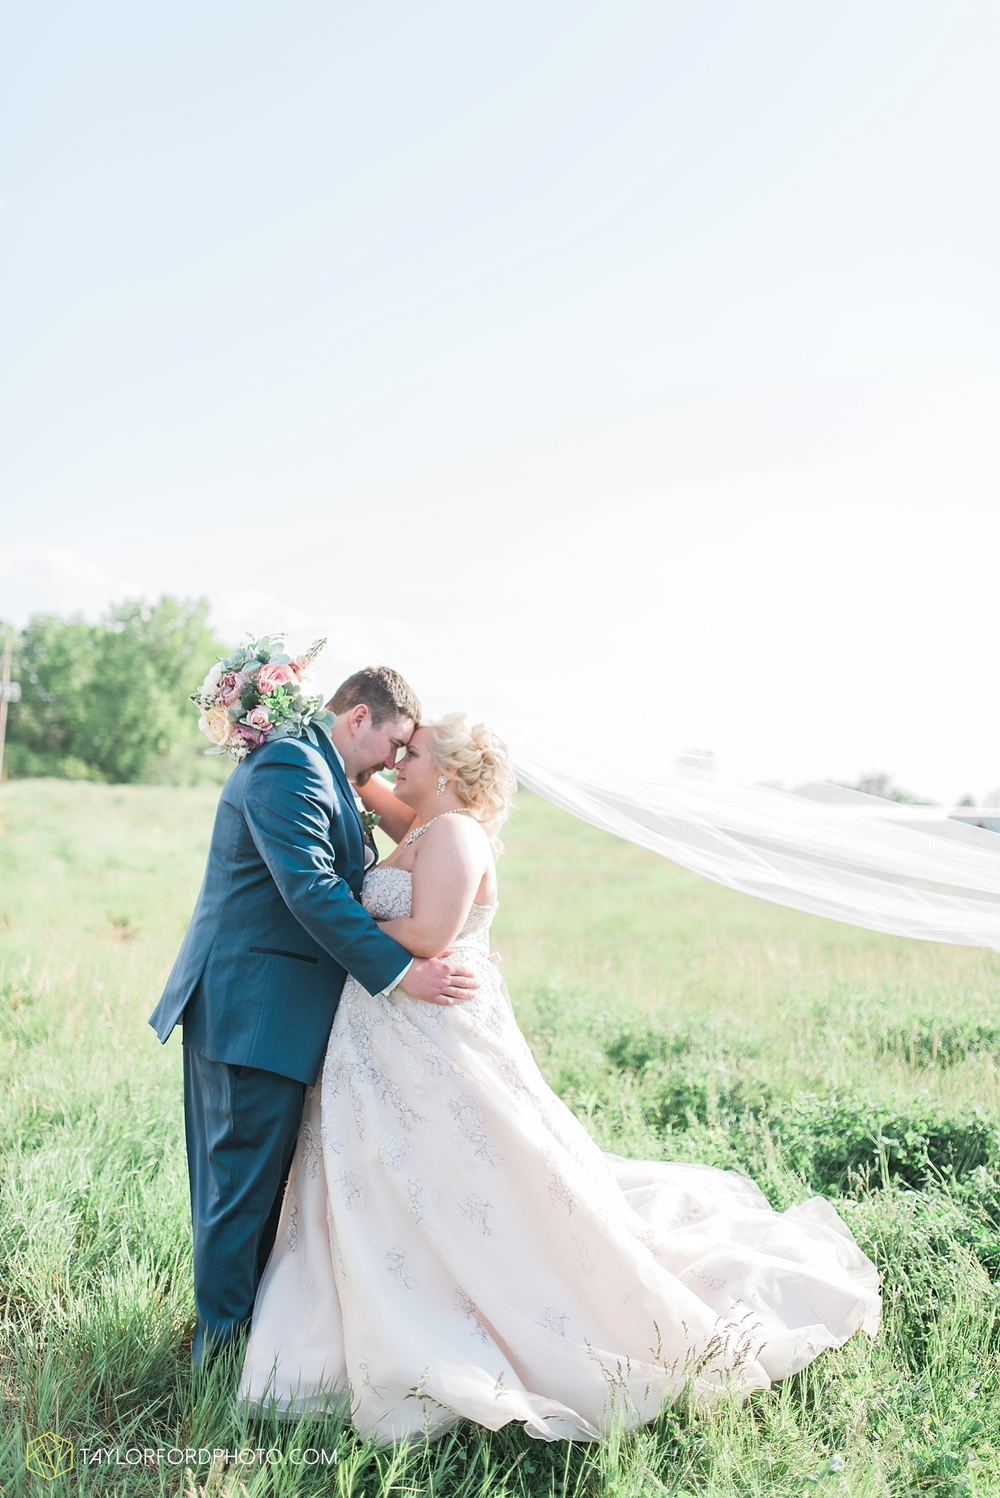 van_wert_ohio_wedding_photographer_taylor_ford_1295.jpg